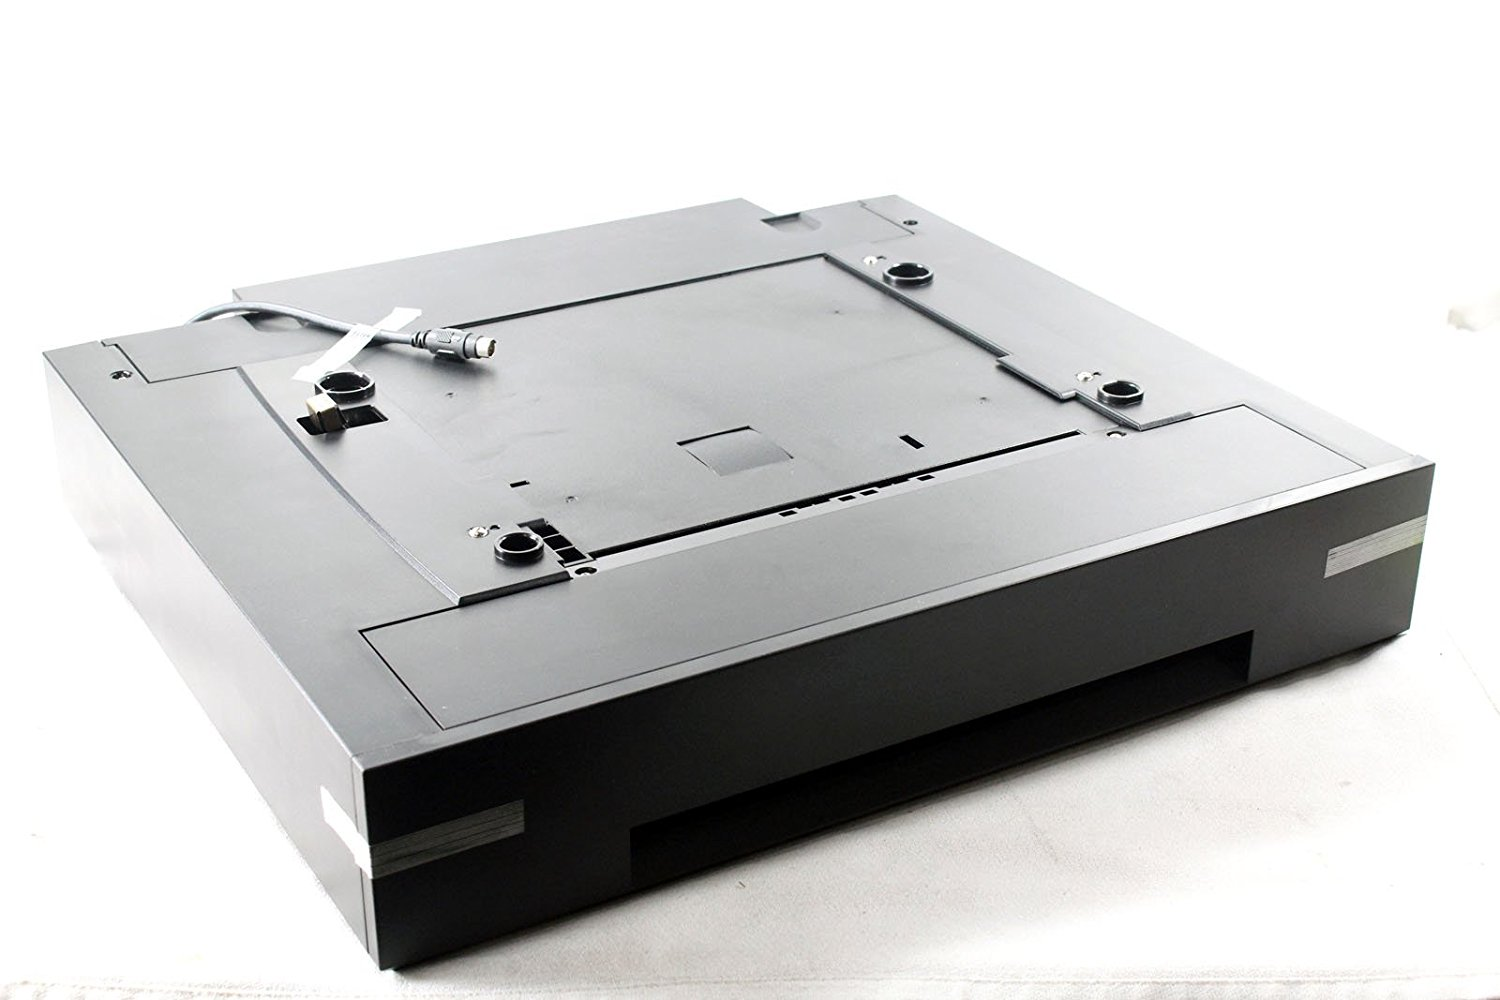 Dell 1815dn & 2335dn& 2355dn Tray 2 Pickup Roller Computers ...